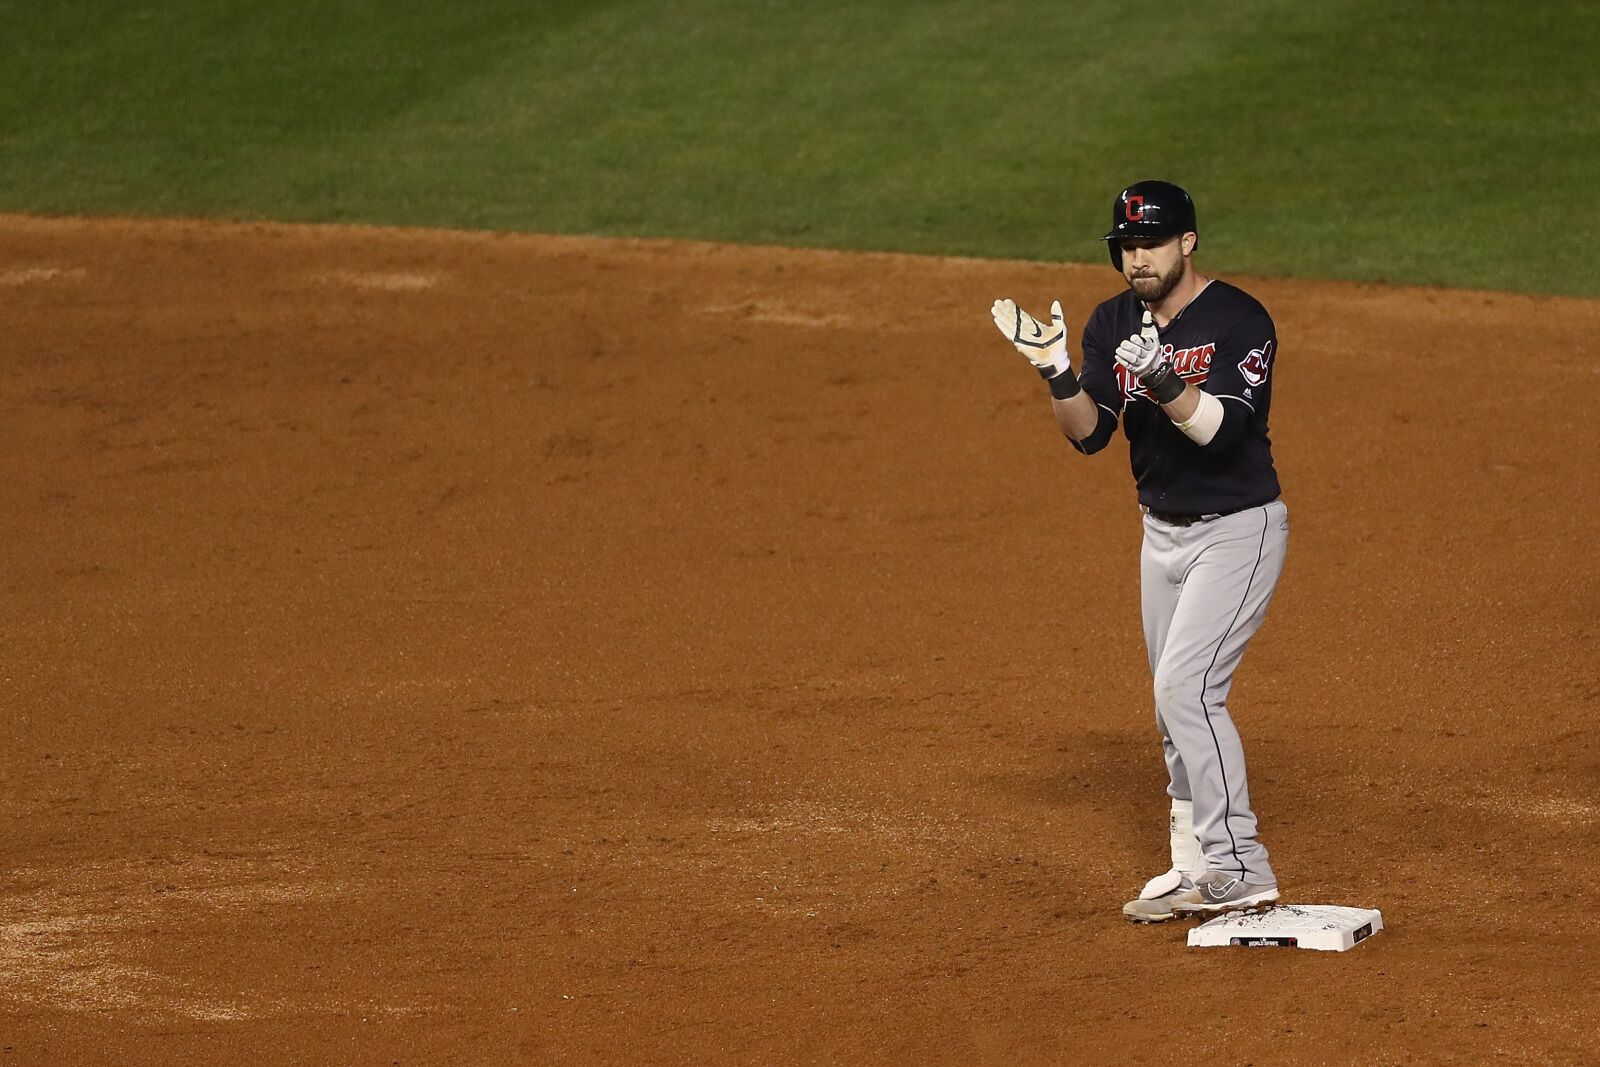 Chicago Cubs: Jason Kipnis isn't even close to an option at second base